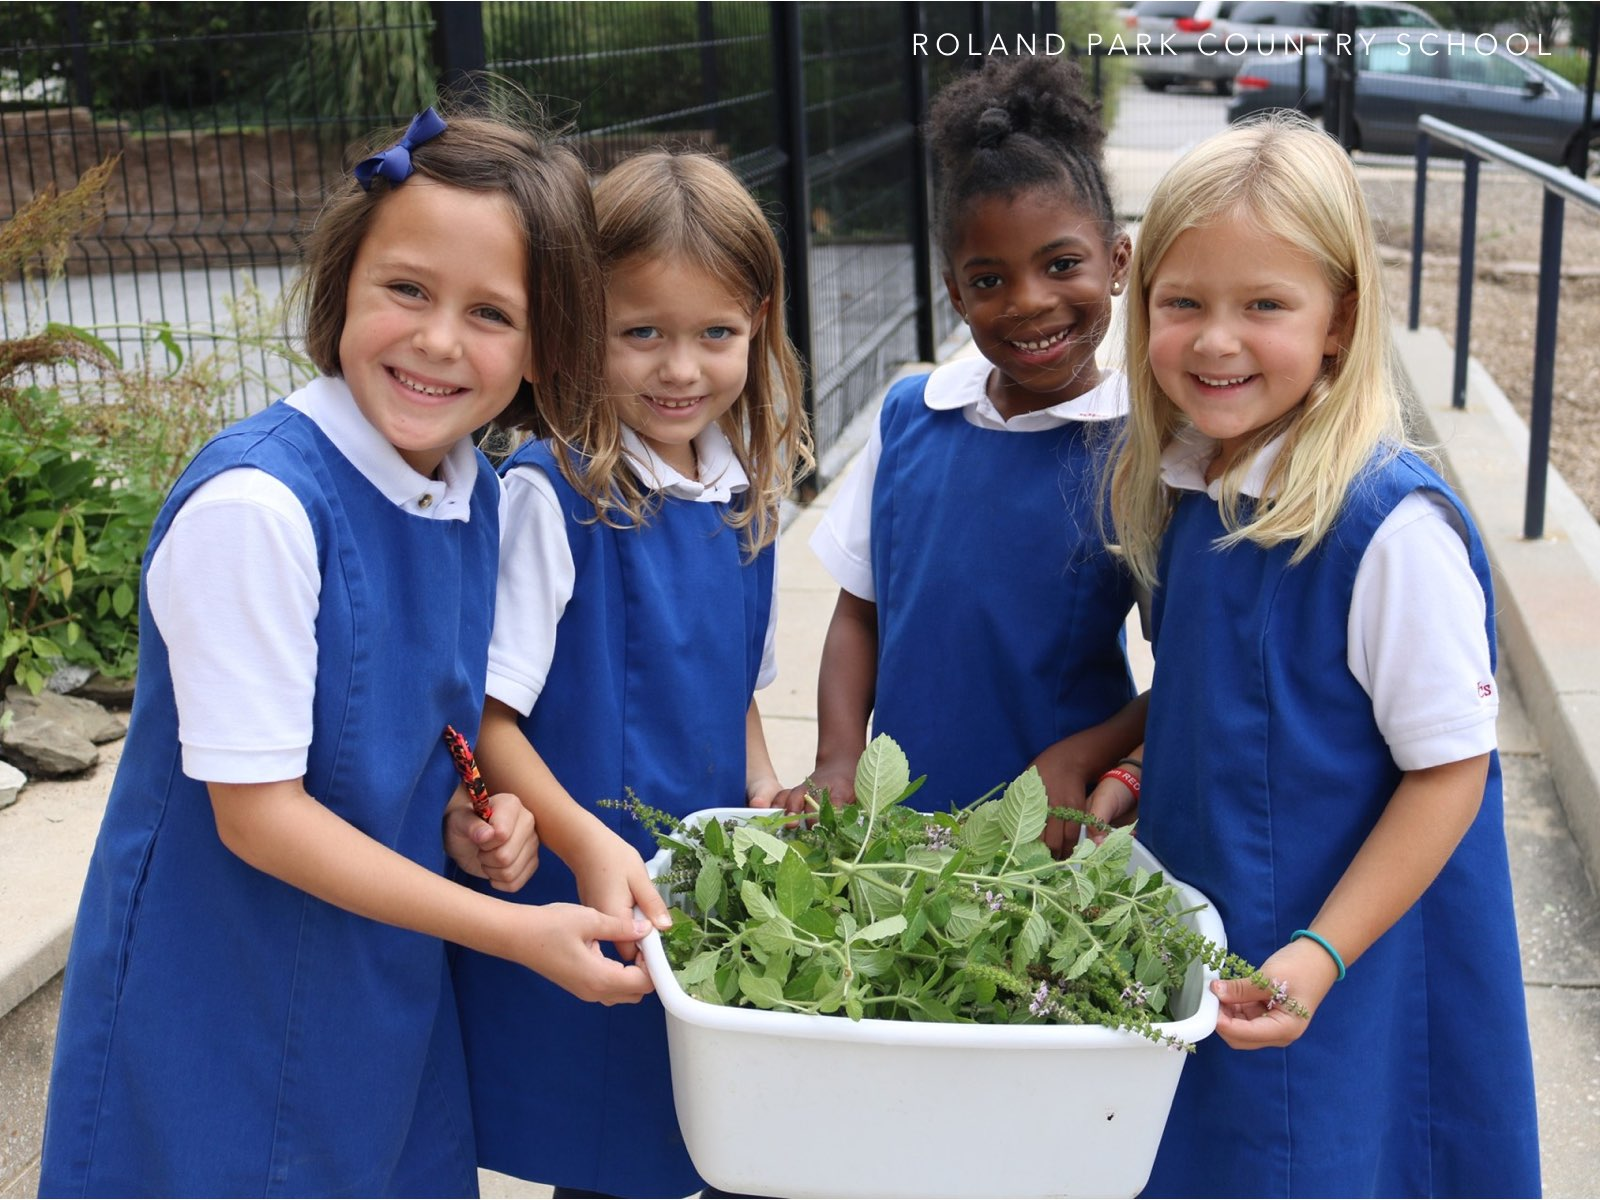 School Stories - Roland Park Country School - (cool) progeny